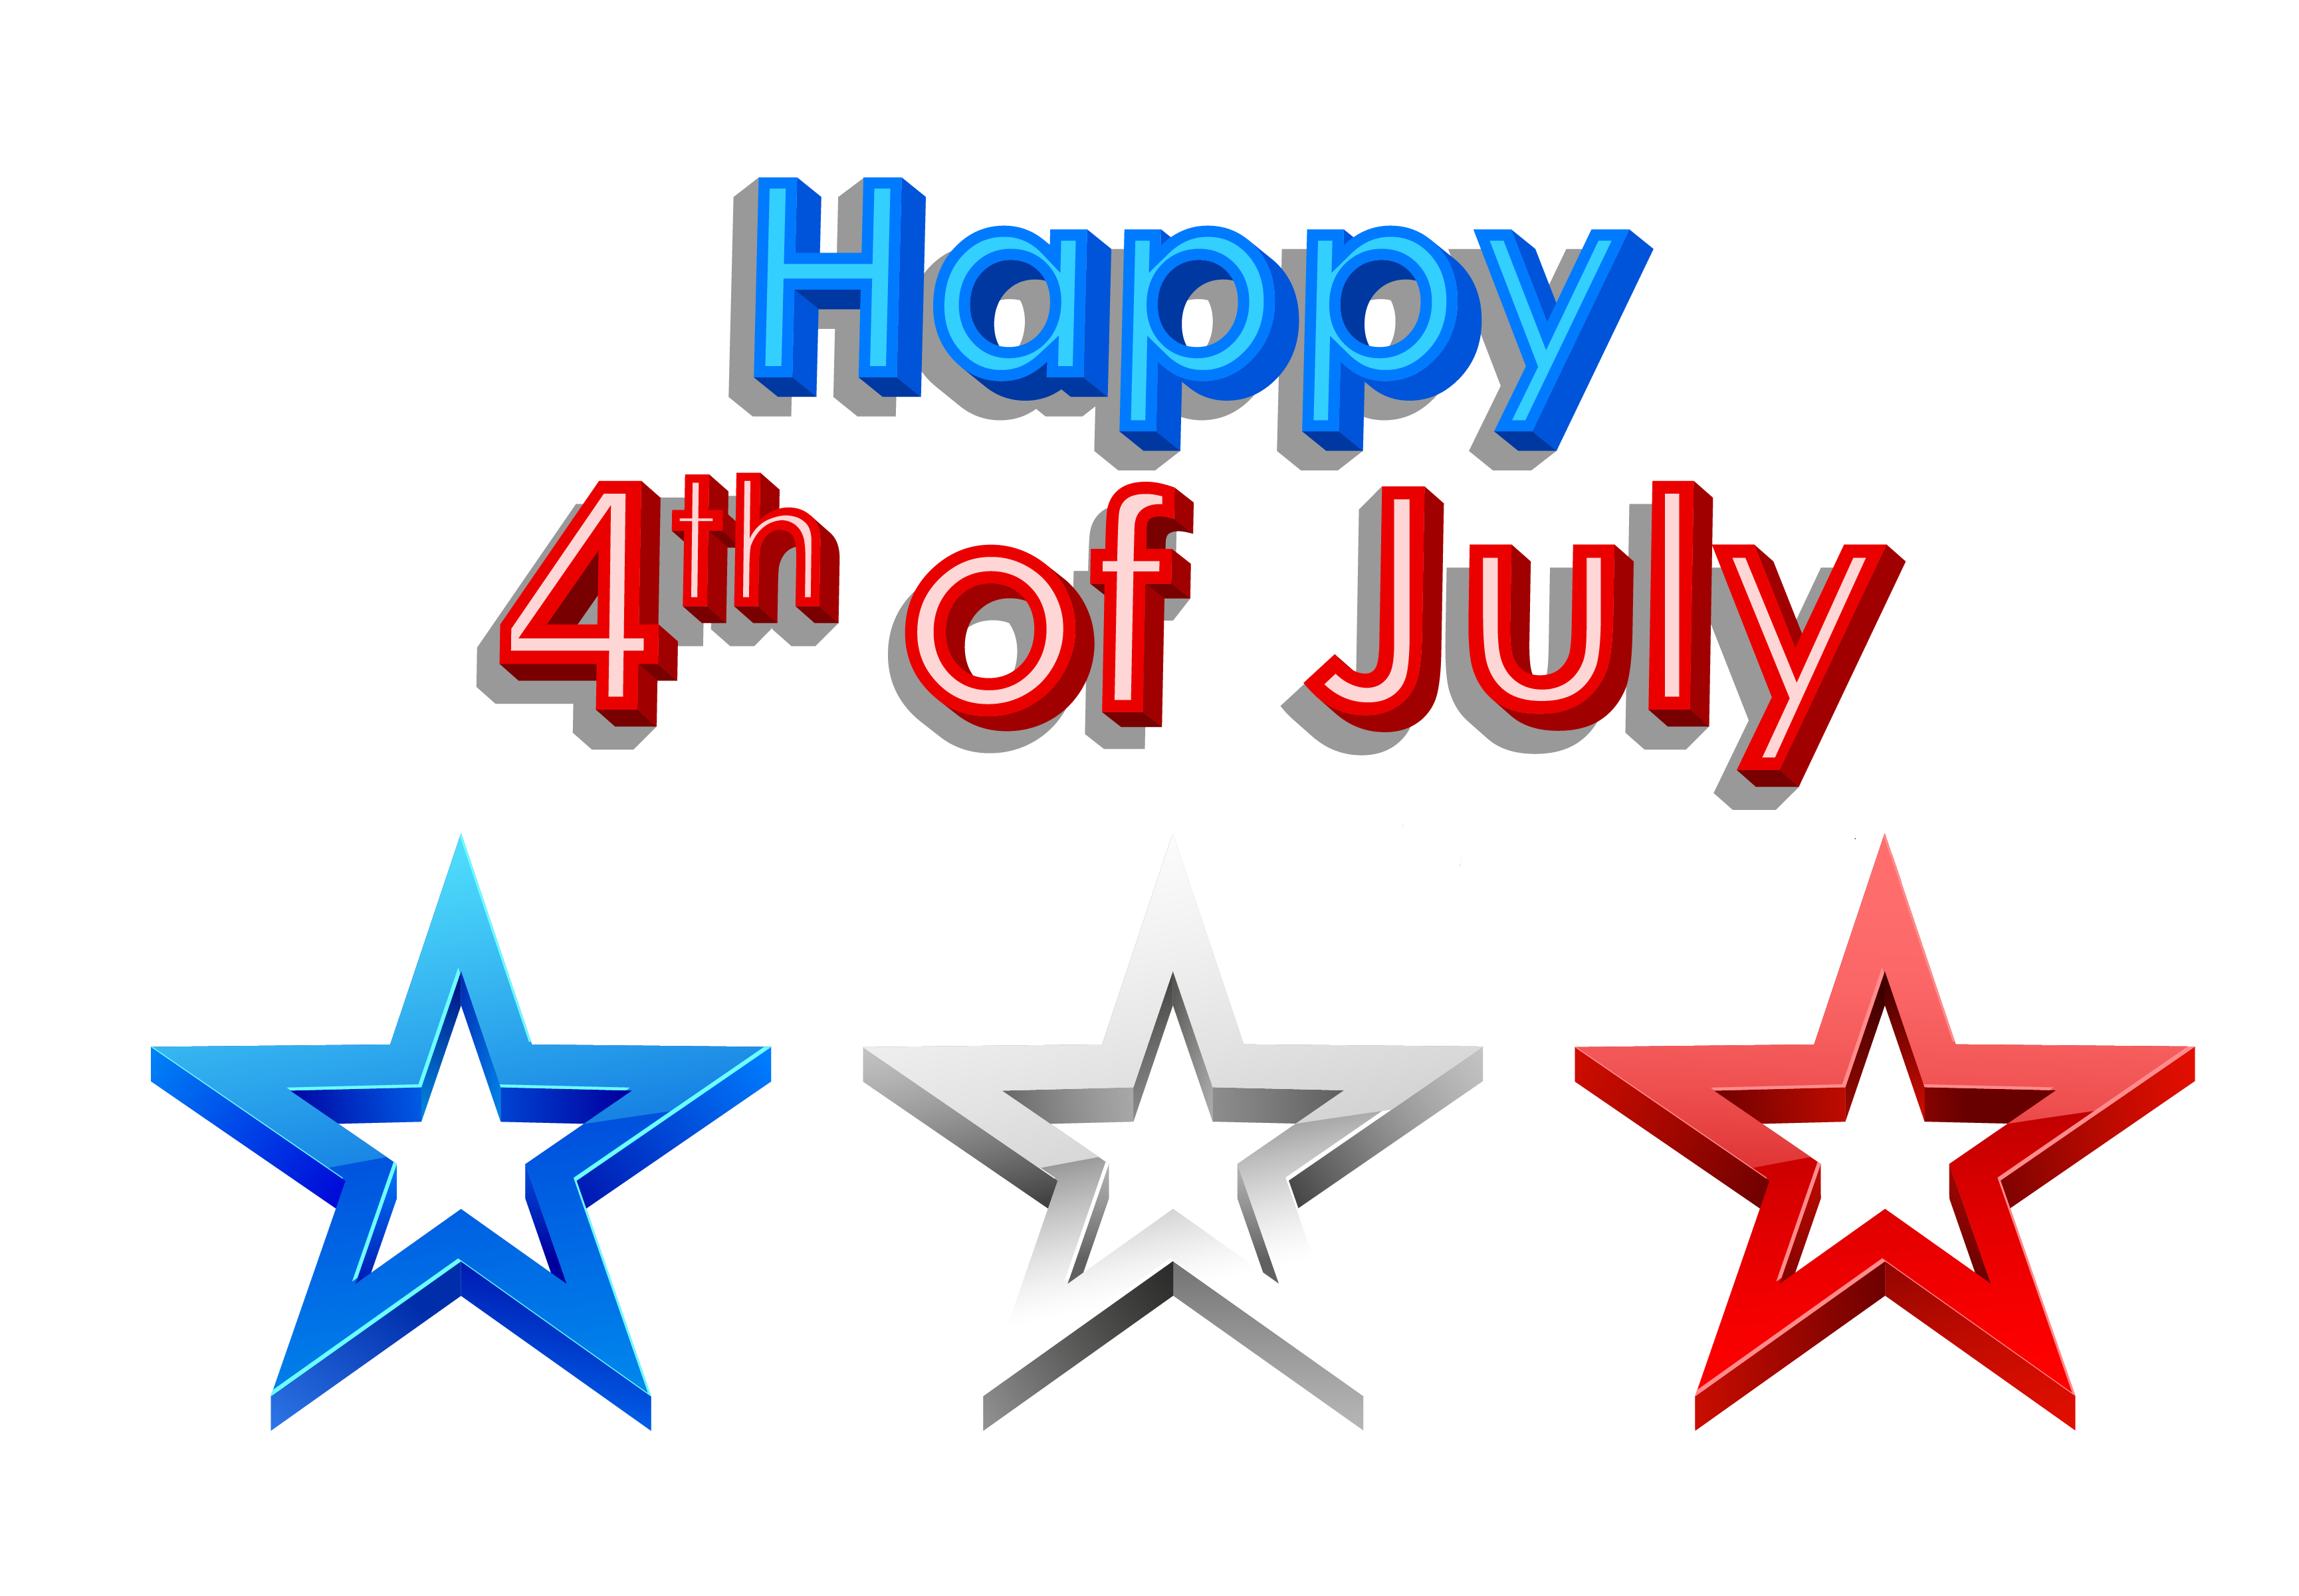 4th Of July Fireworks Clipart Png Happy -4th Of July Fireworks Clipart Png Happy 4th Of July Png Clipart-3